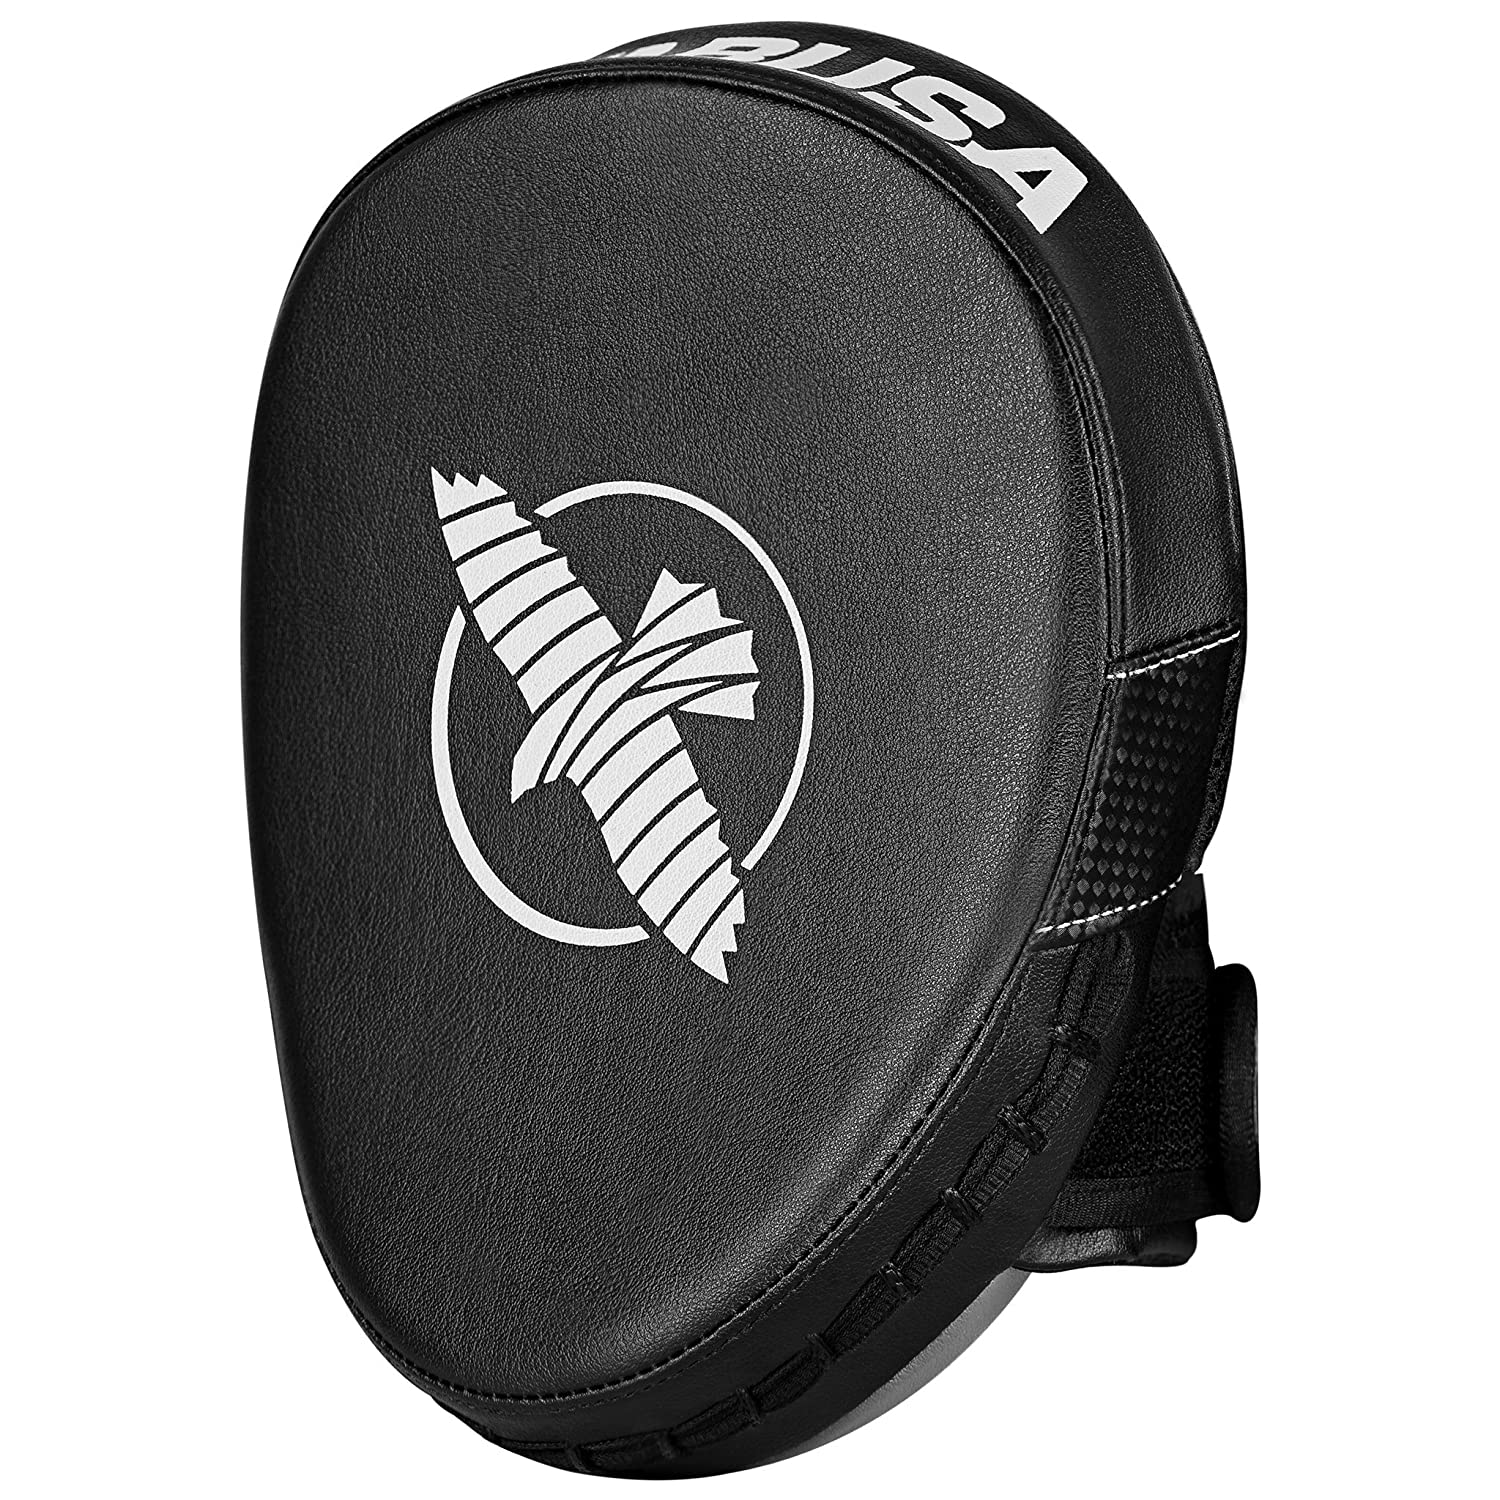 Hayabusa Micro Focus Mitts for Boxing, Kickboxing and Muay Thai